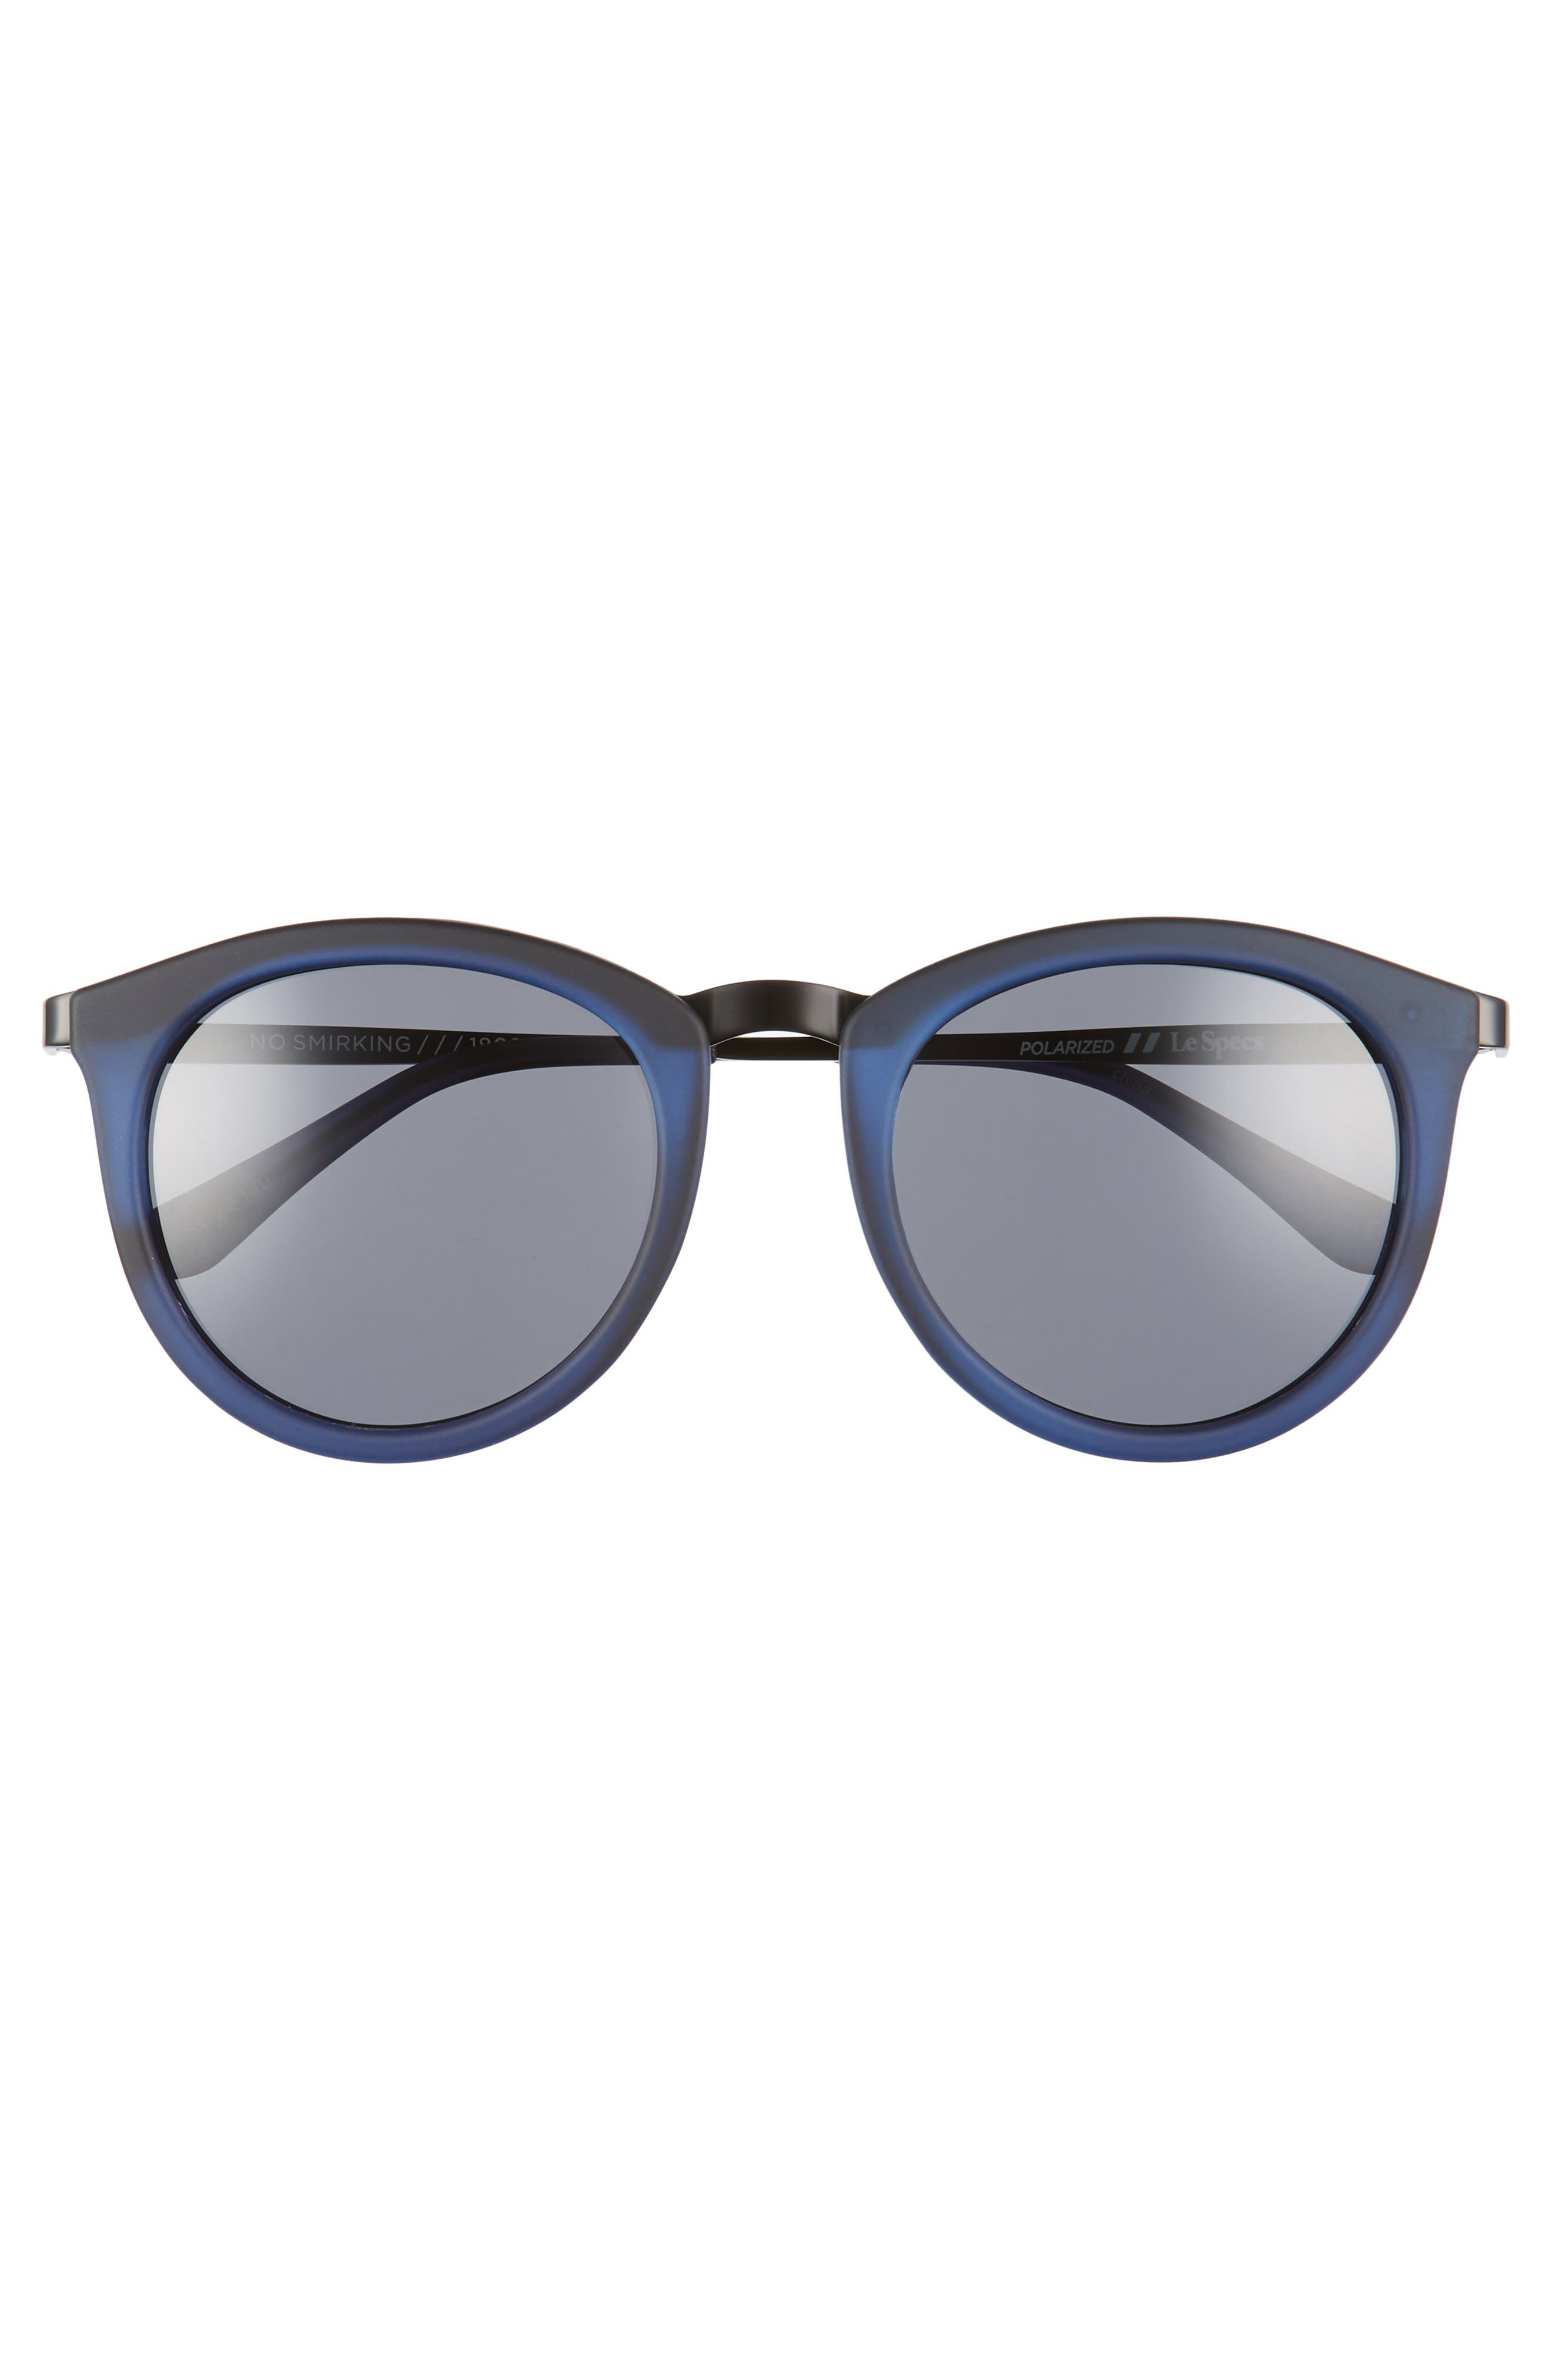 No Smirking 50mm Polarized Sunglasses,                             Alternate thumbnail 3, color,                             Navy Rubber